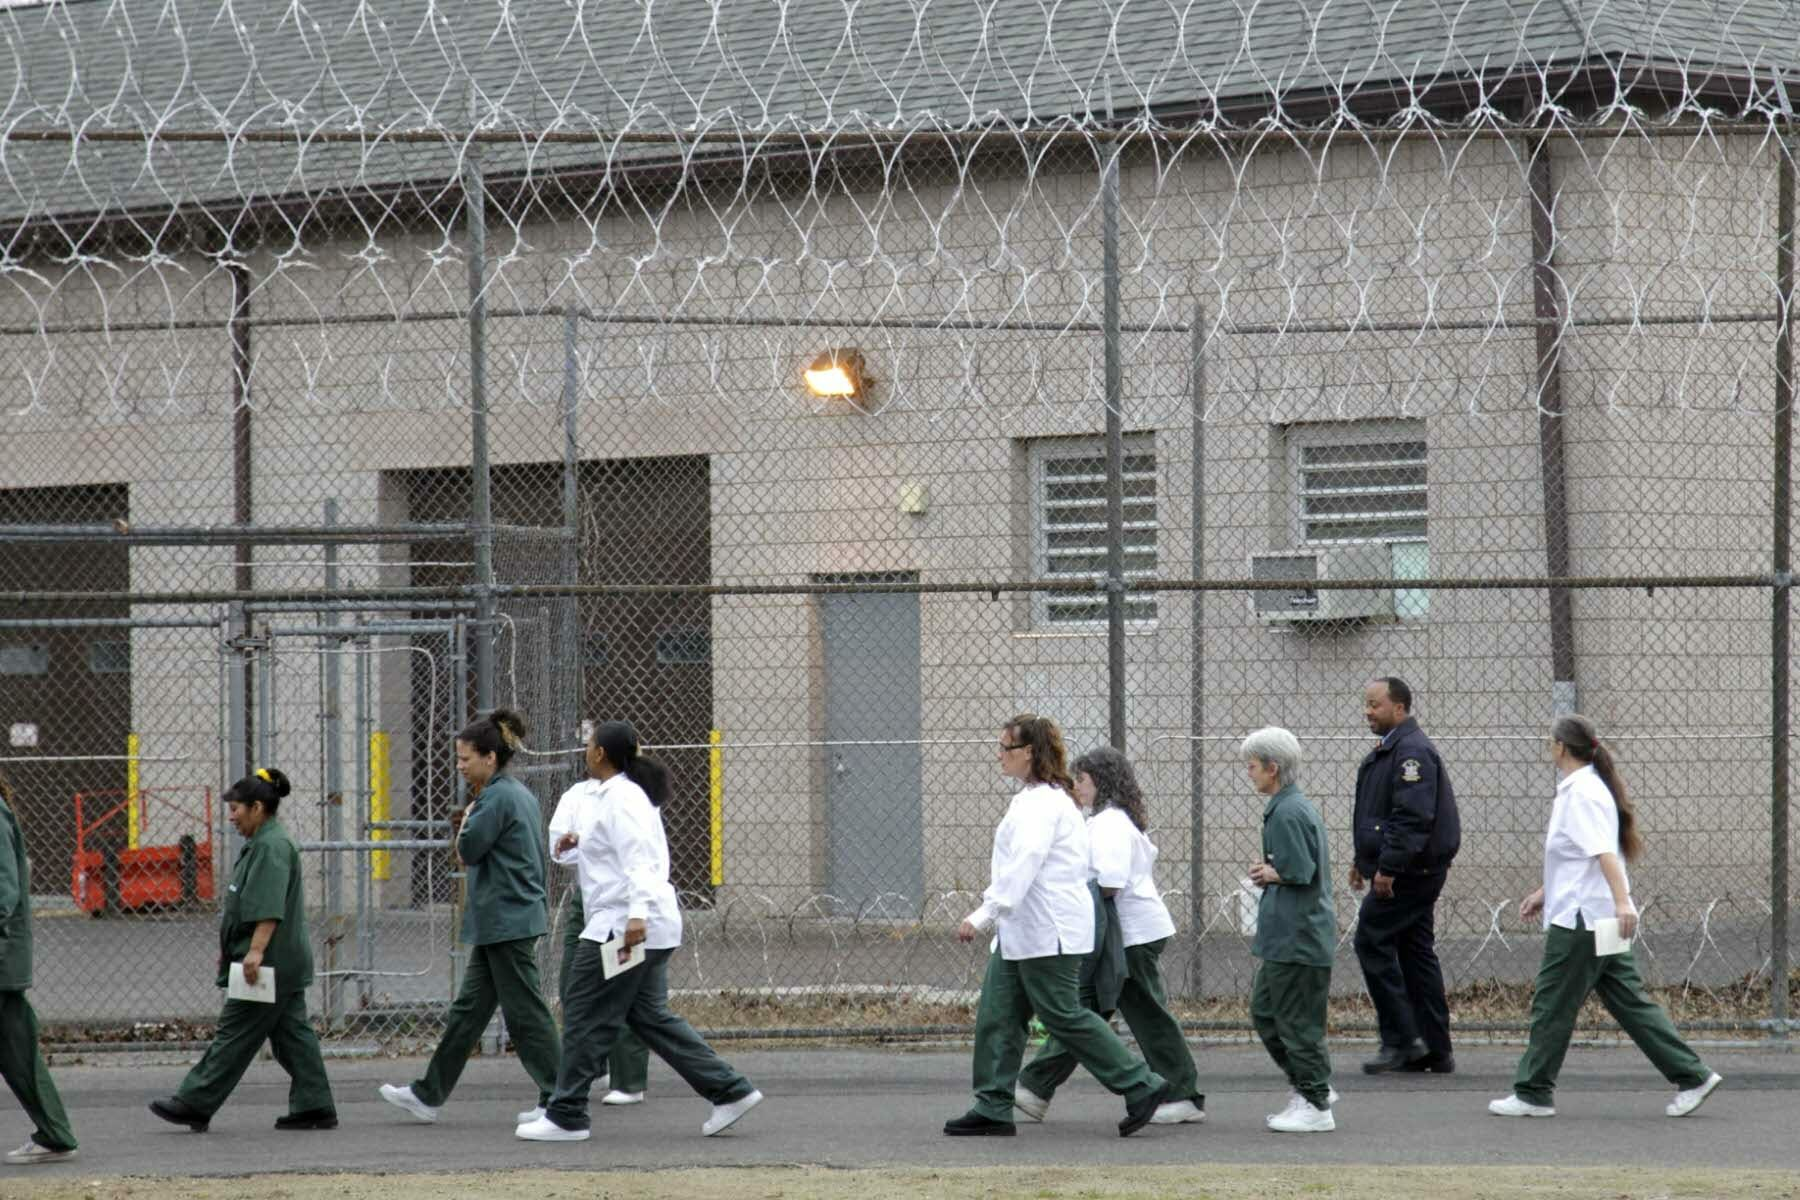 Women walk on a road at the women-only Taconic Correctional Facility in Bedford Hills, N.Y., Wednesday, March 28, 2012. (AP Photo/Seth Wenig)